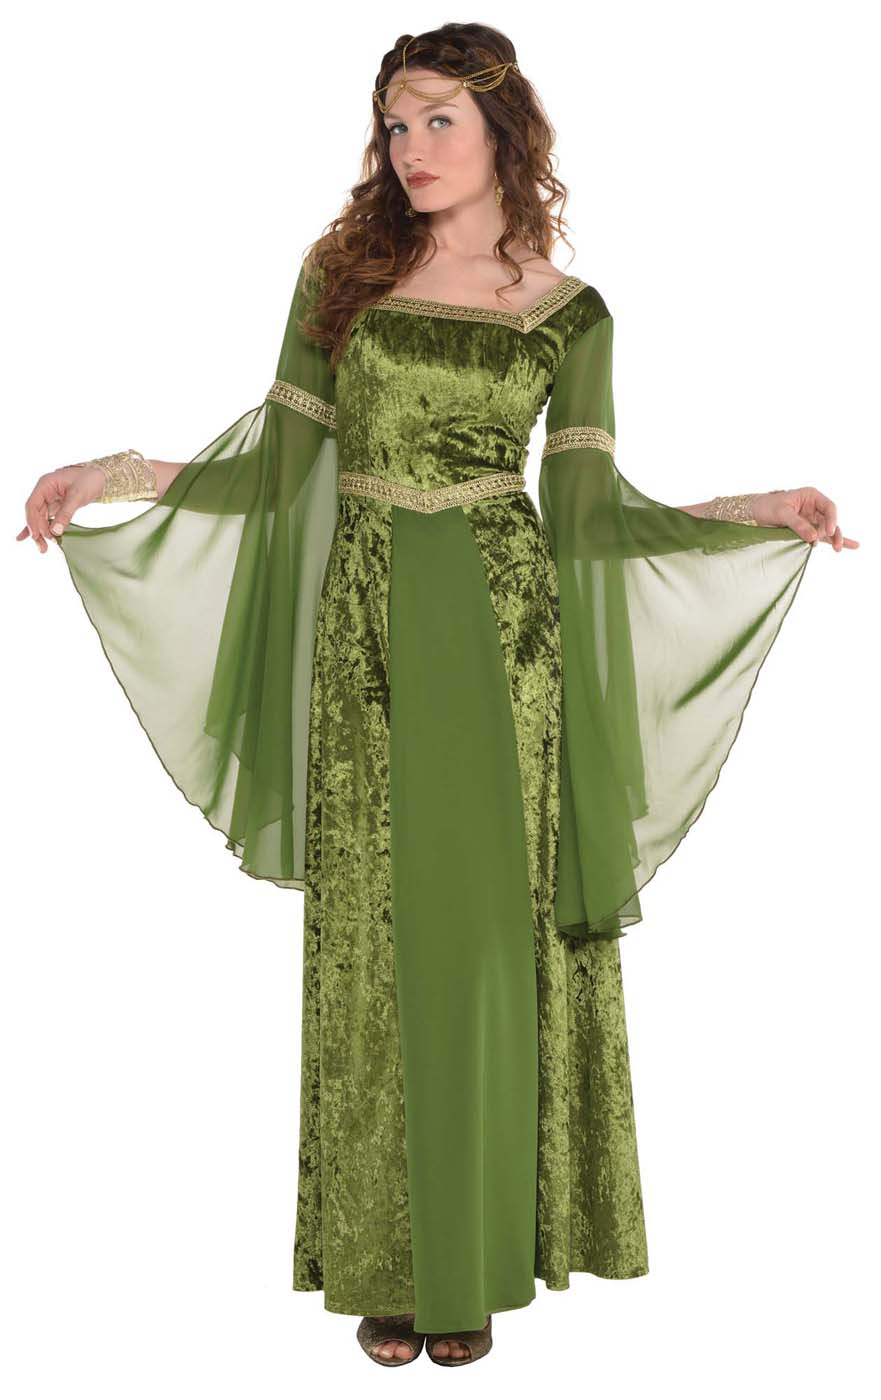 Costumes Renaissance Gown Womens Adult Medieval Maiden Costume